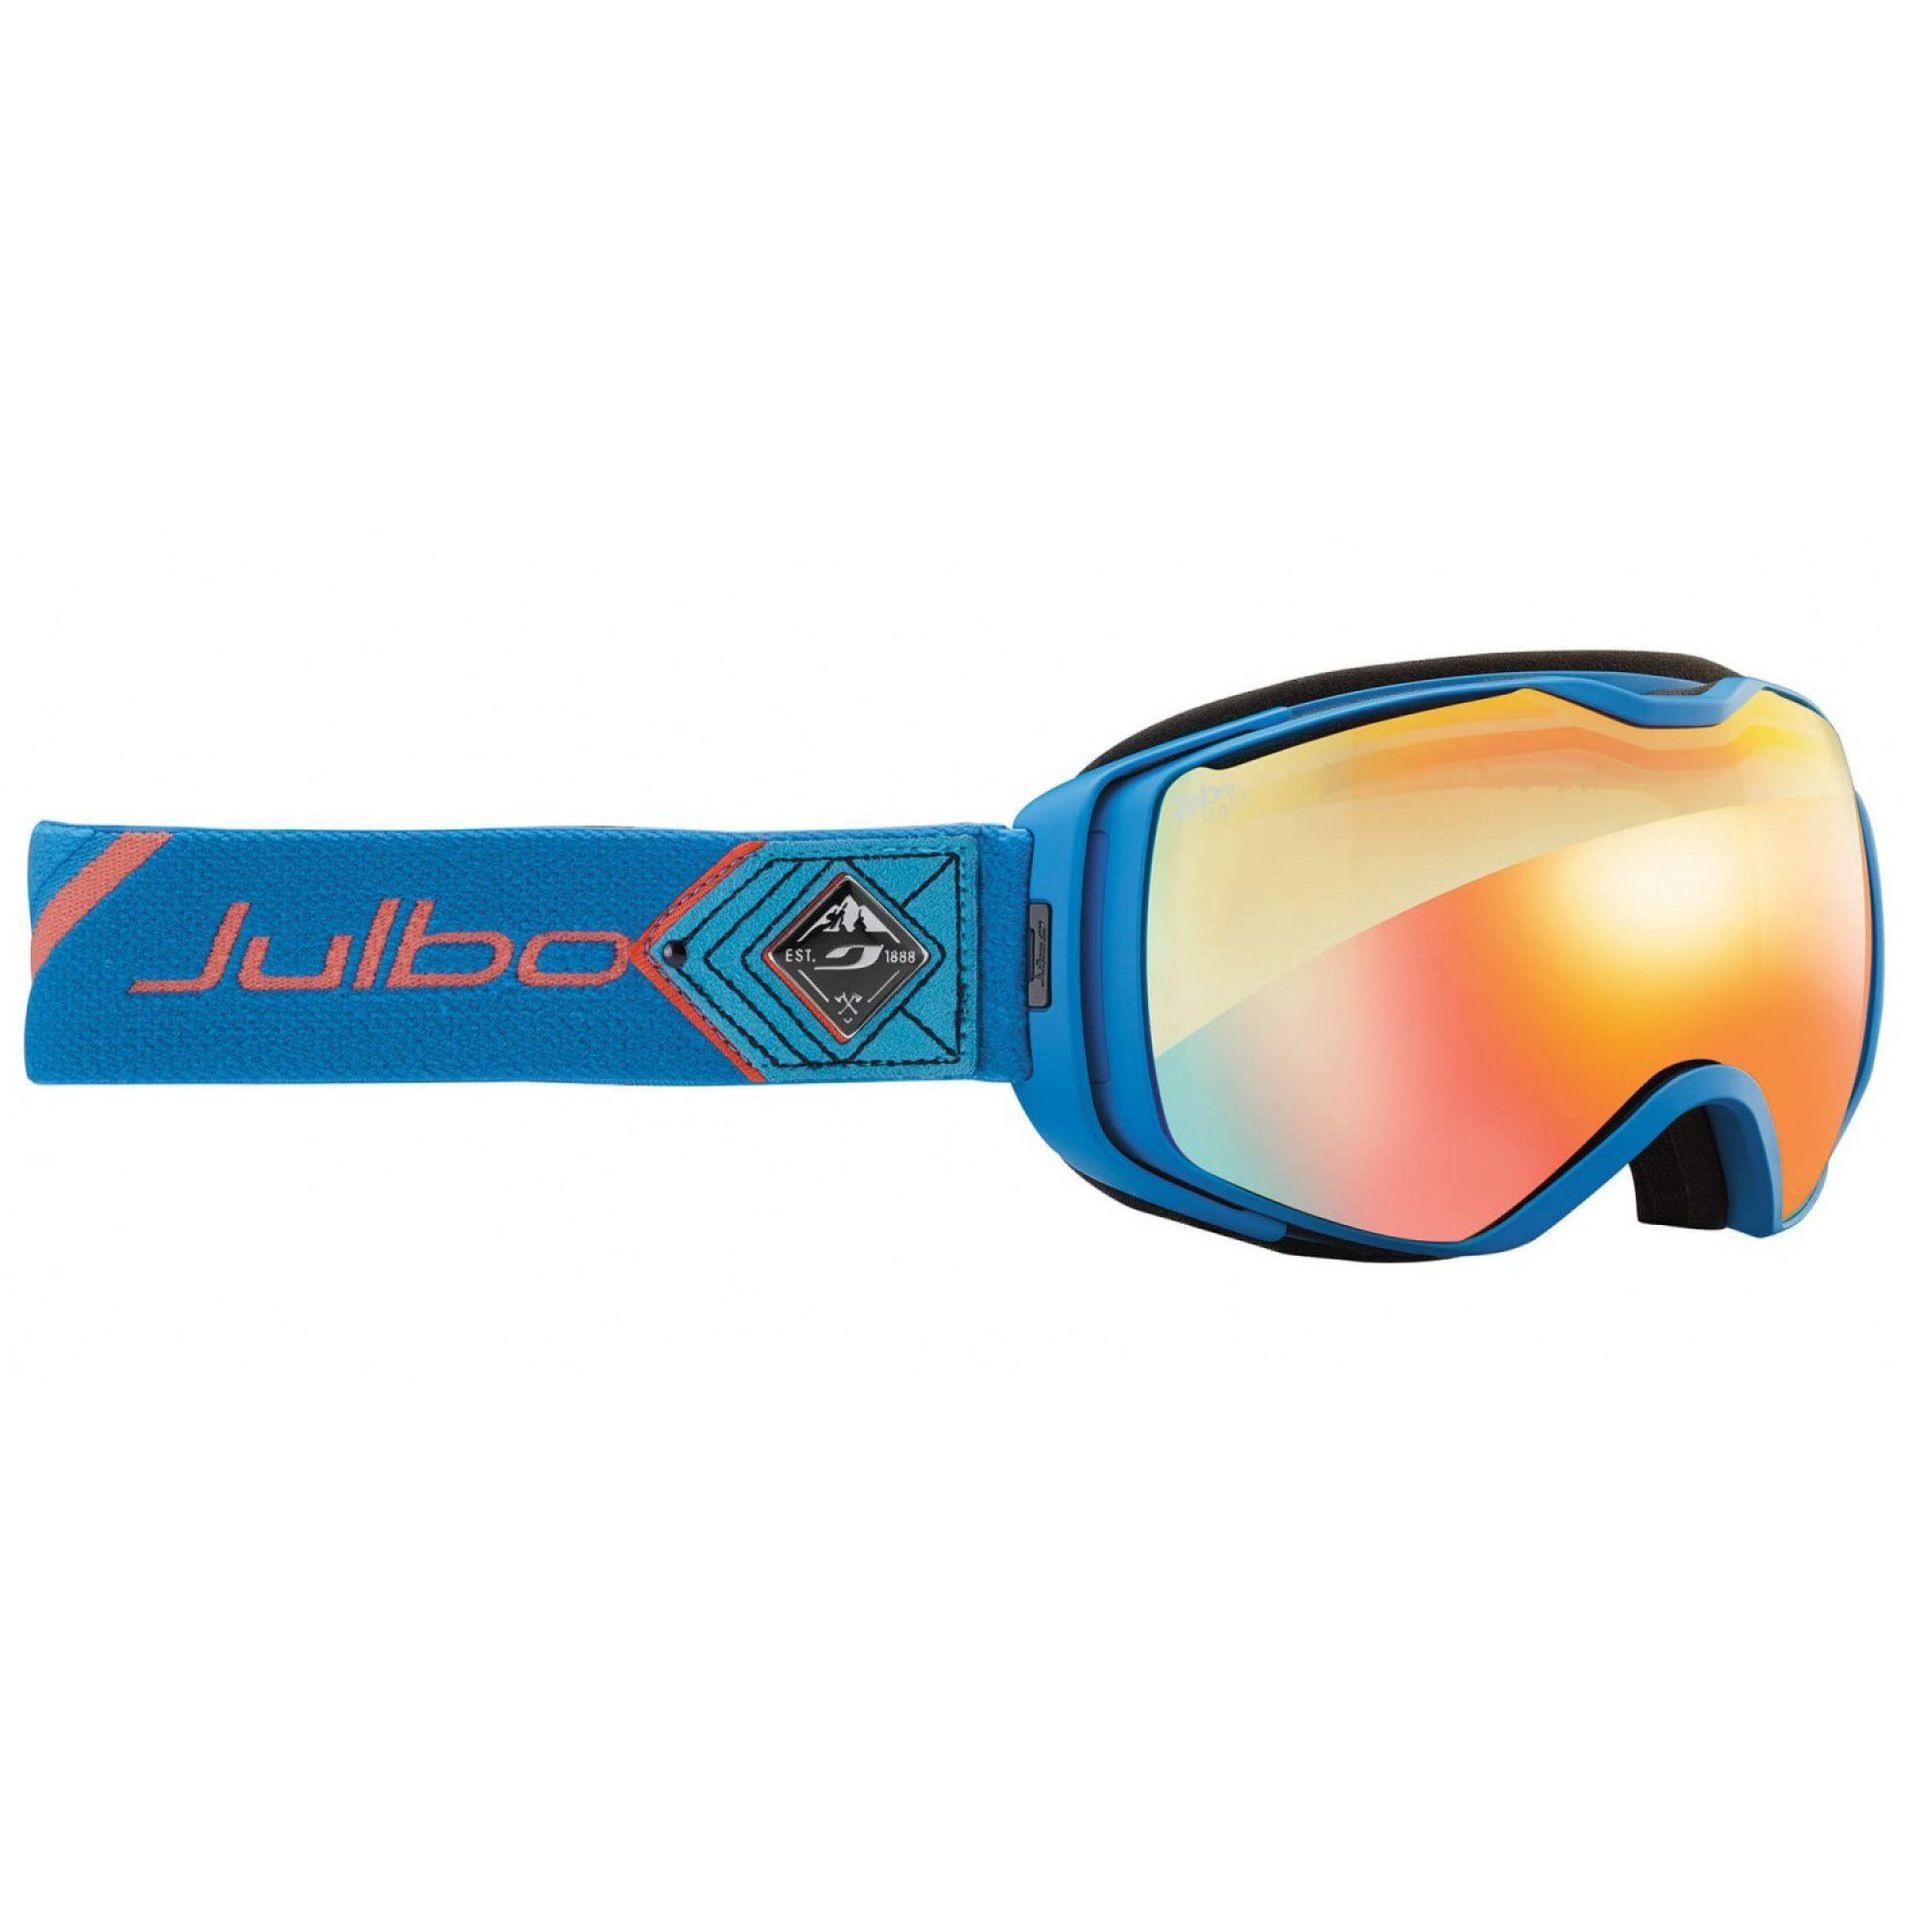 GOGLE JULBO UNIVERSE  BLUEORANGE MULTILAYER FIRE ZEBRA LIGHT